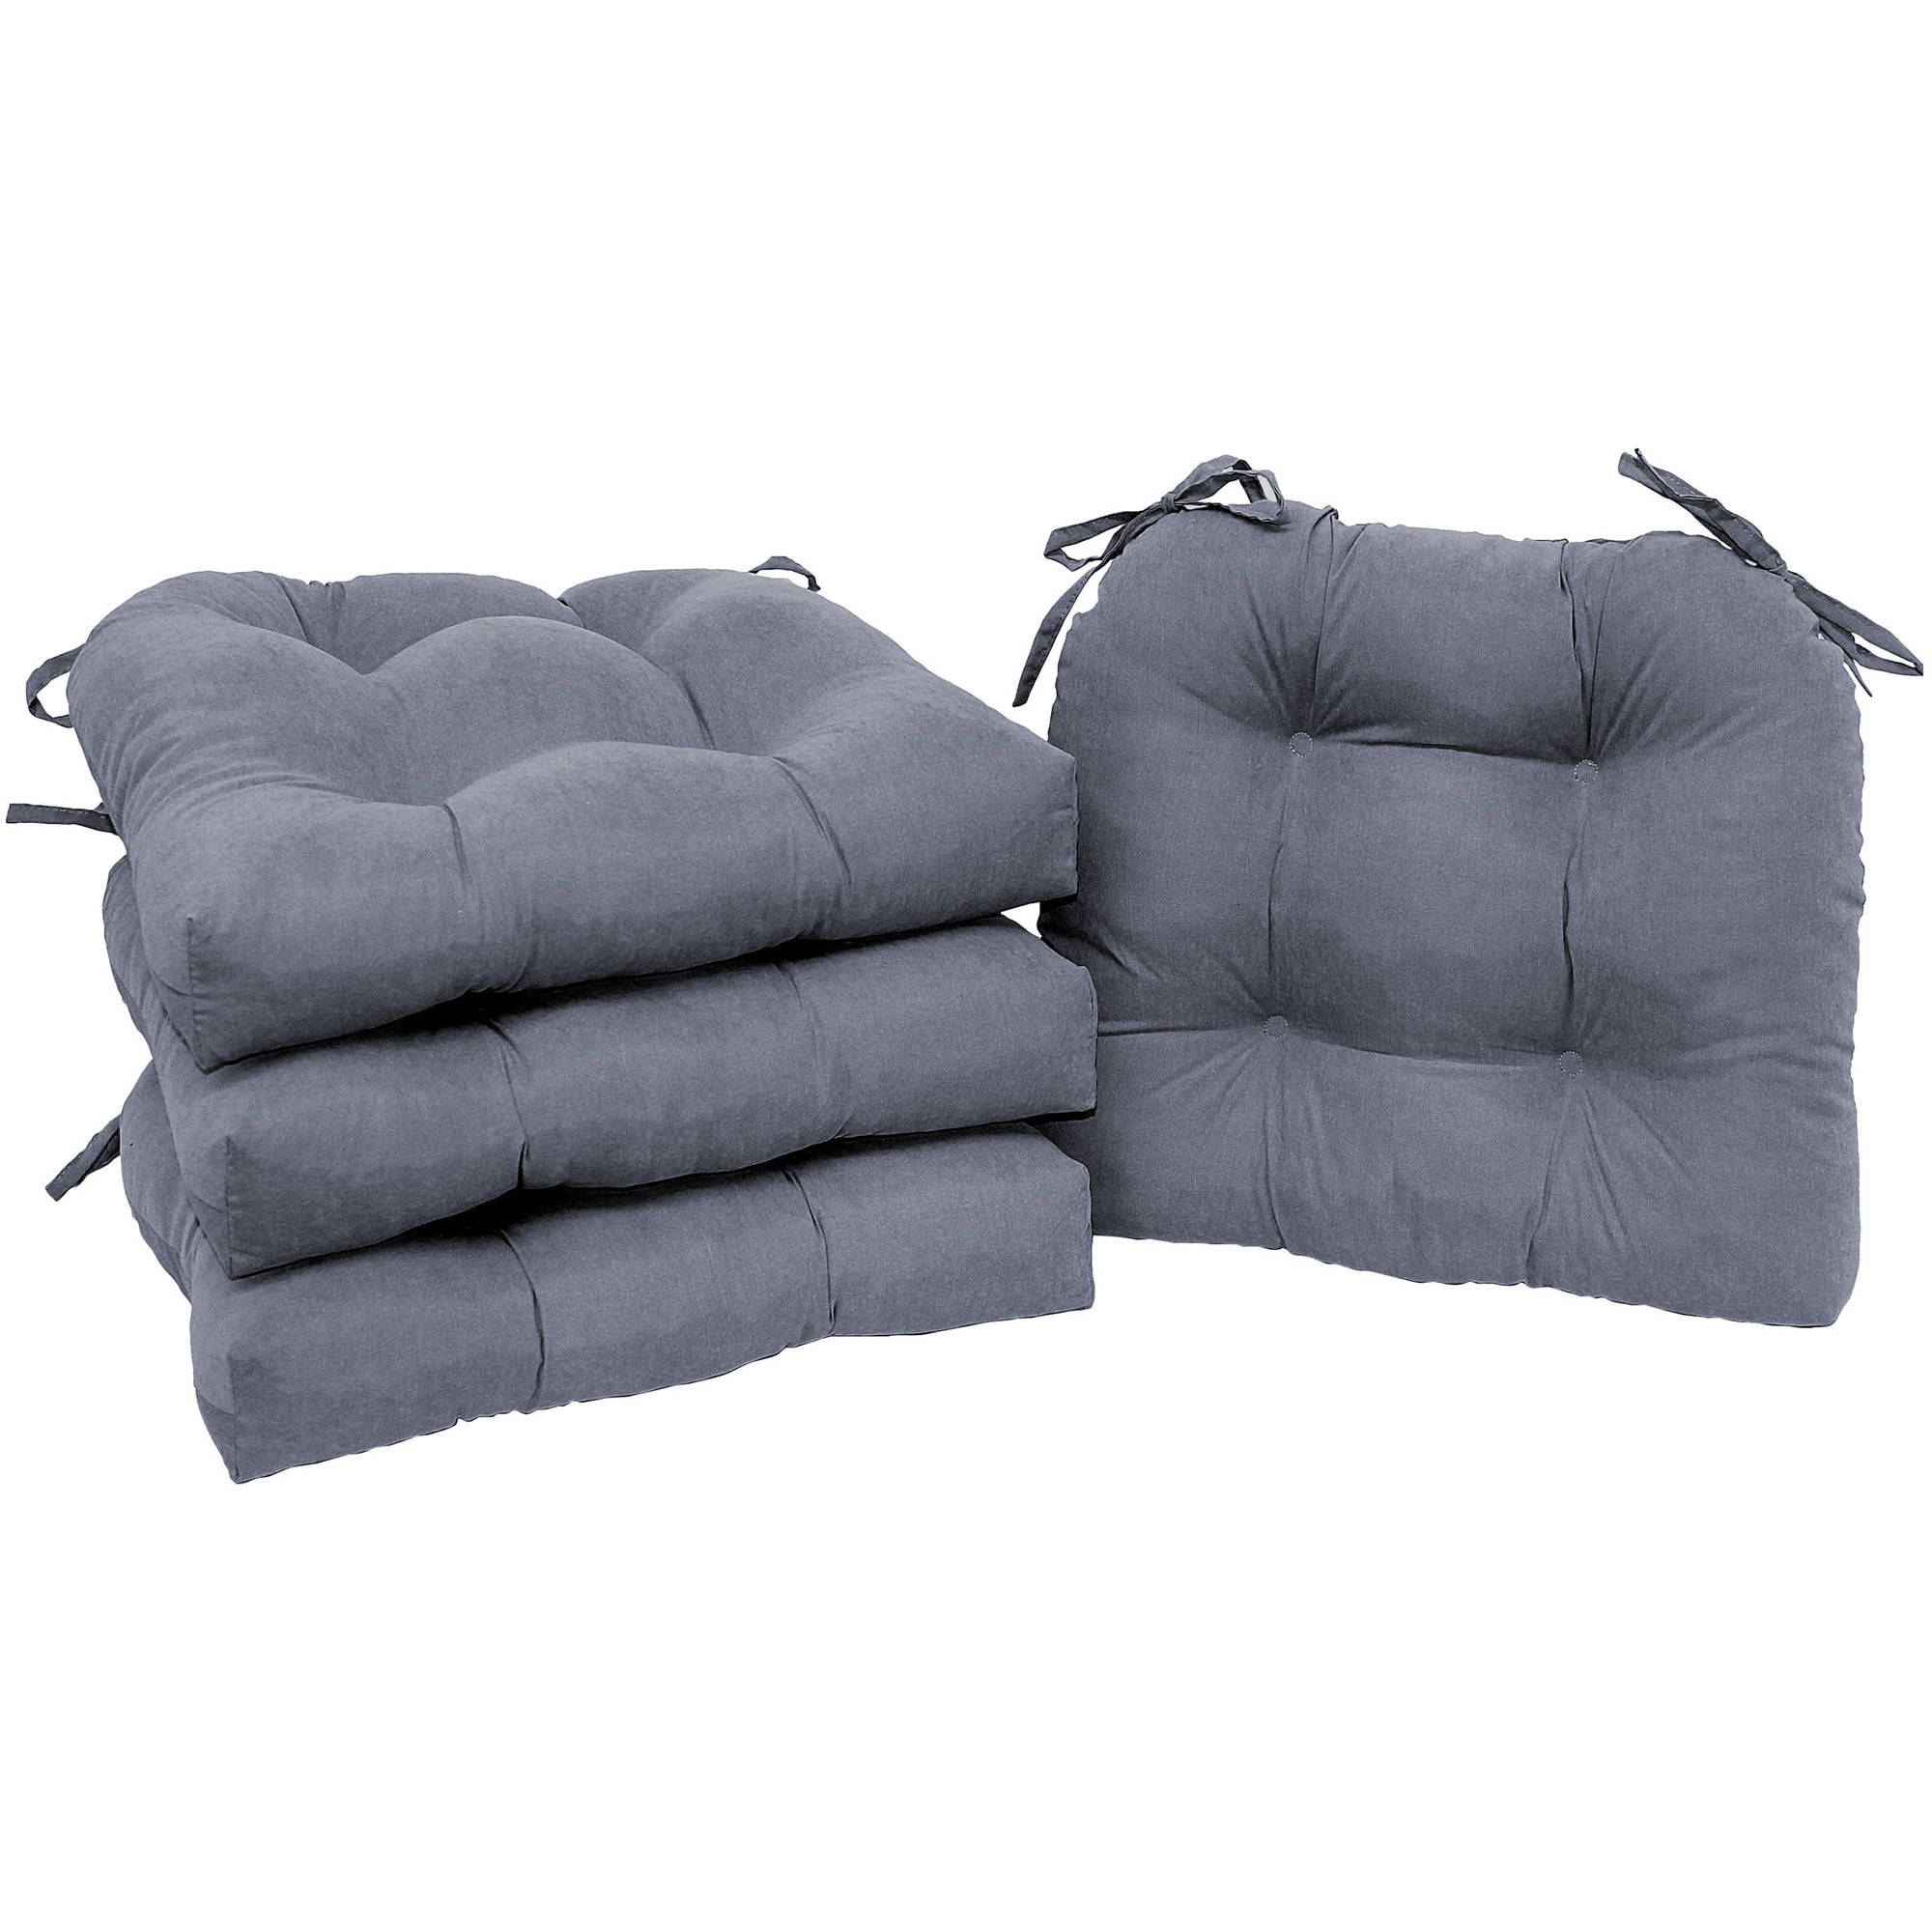 Mainstays Faux Chair Pads with Ties, Grey, 4-Pack by Brentwood